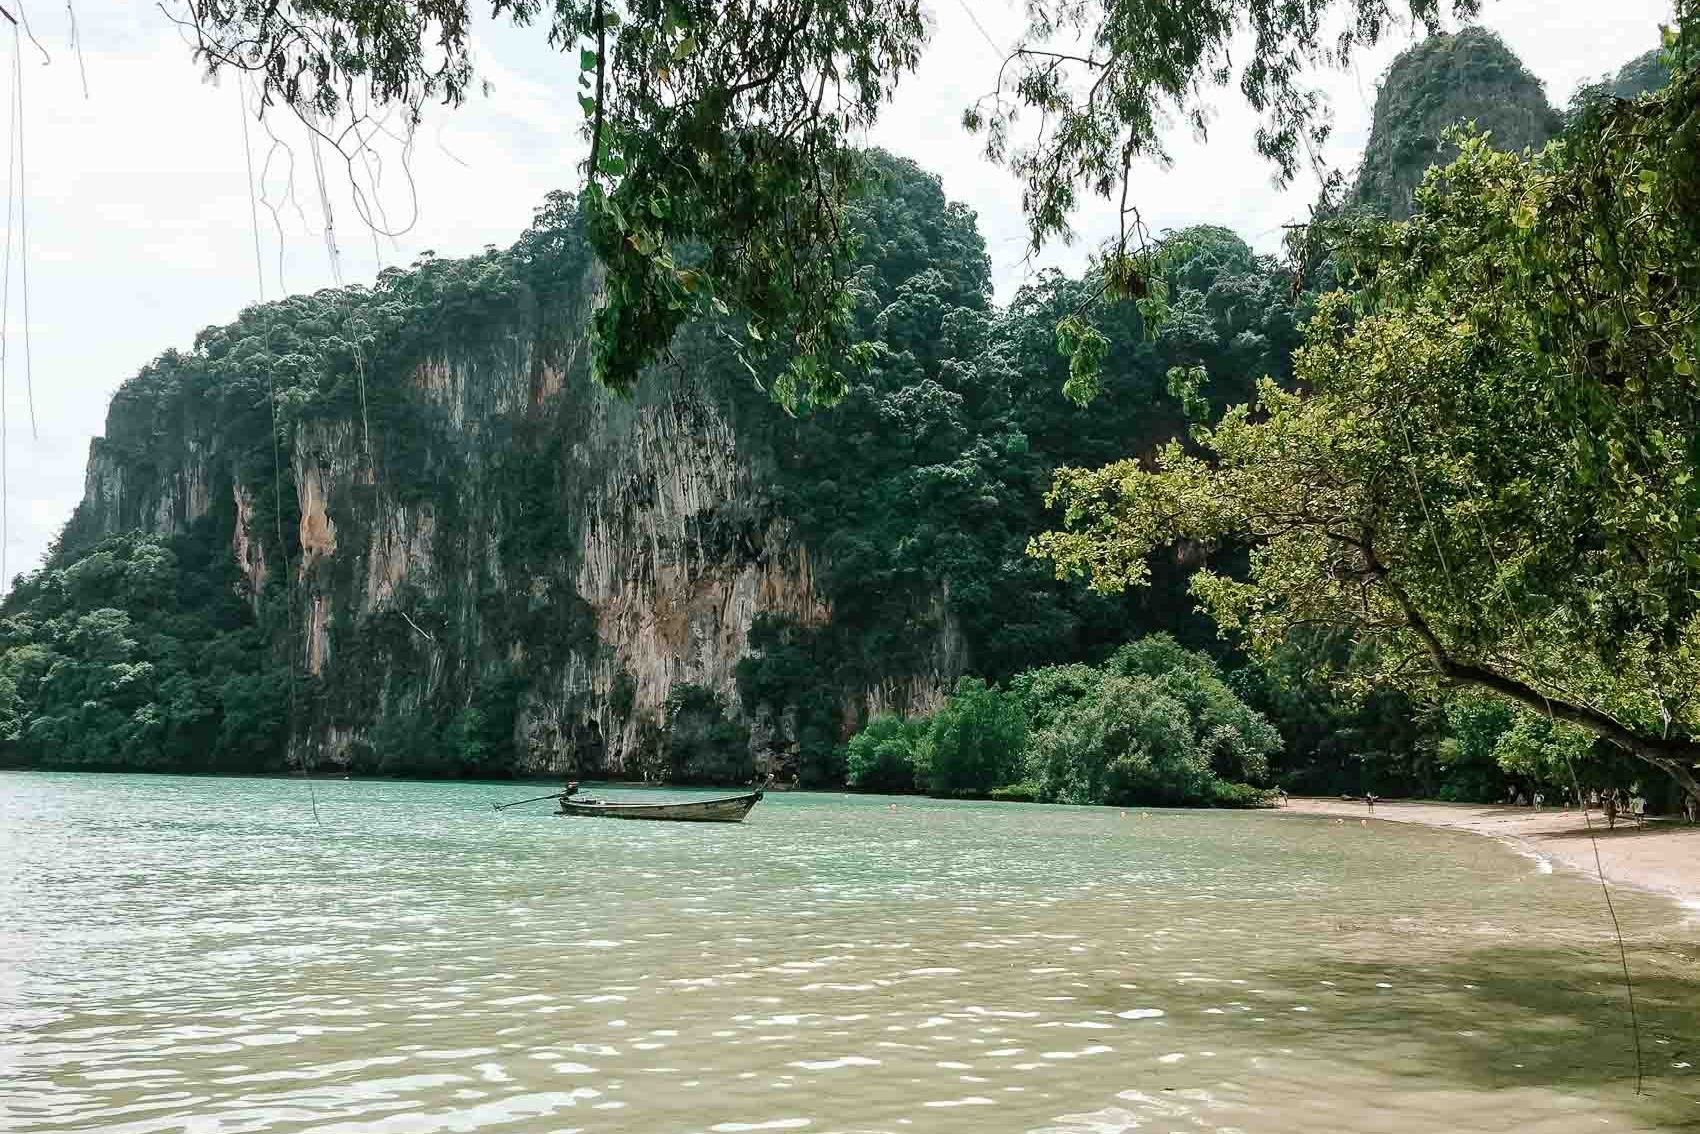 boat floating on water near limestone rocks in Railay Beach in Thailand